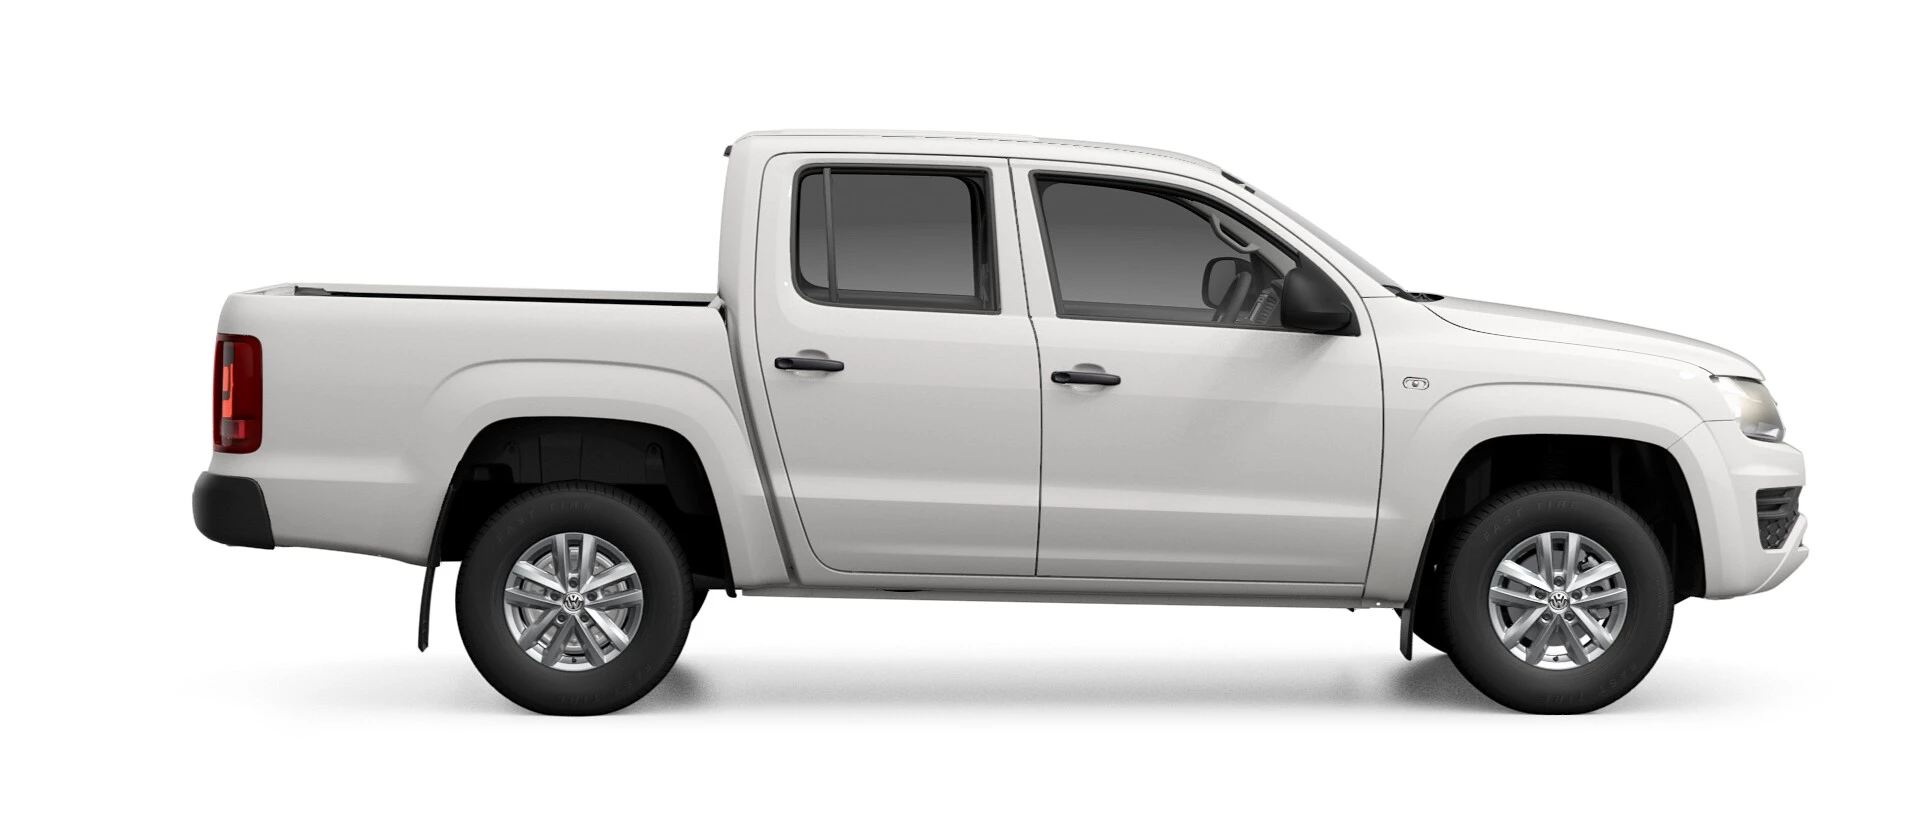 2019 MY20 Volkswagen Amarok 2H Core Cab chassis